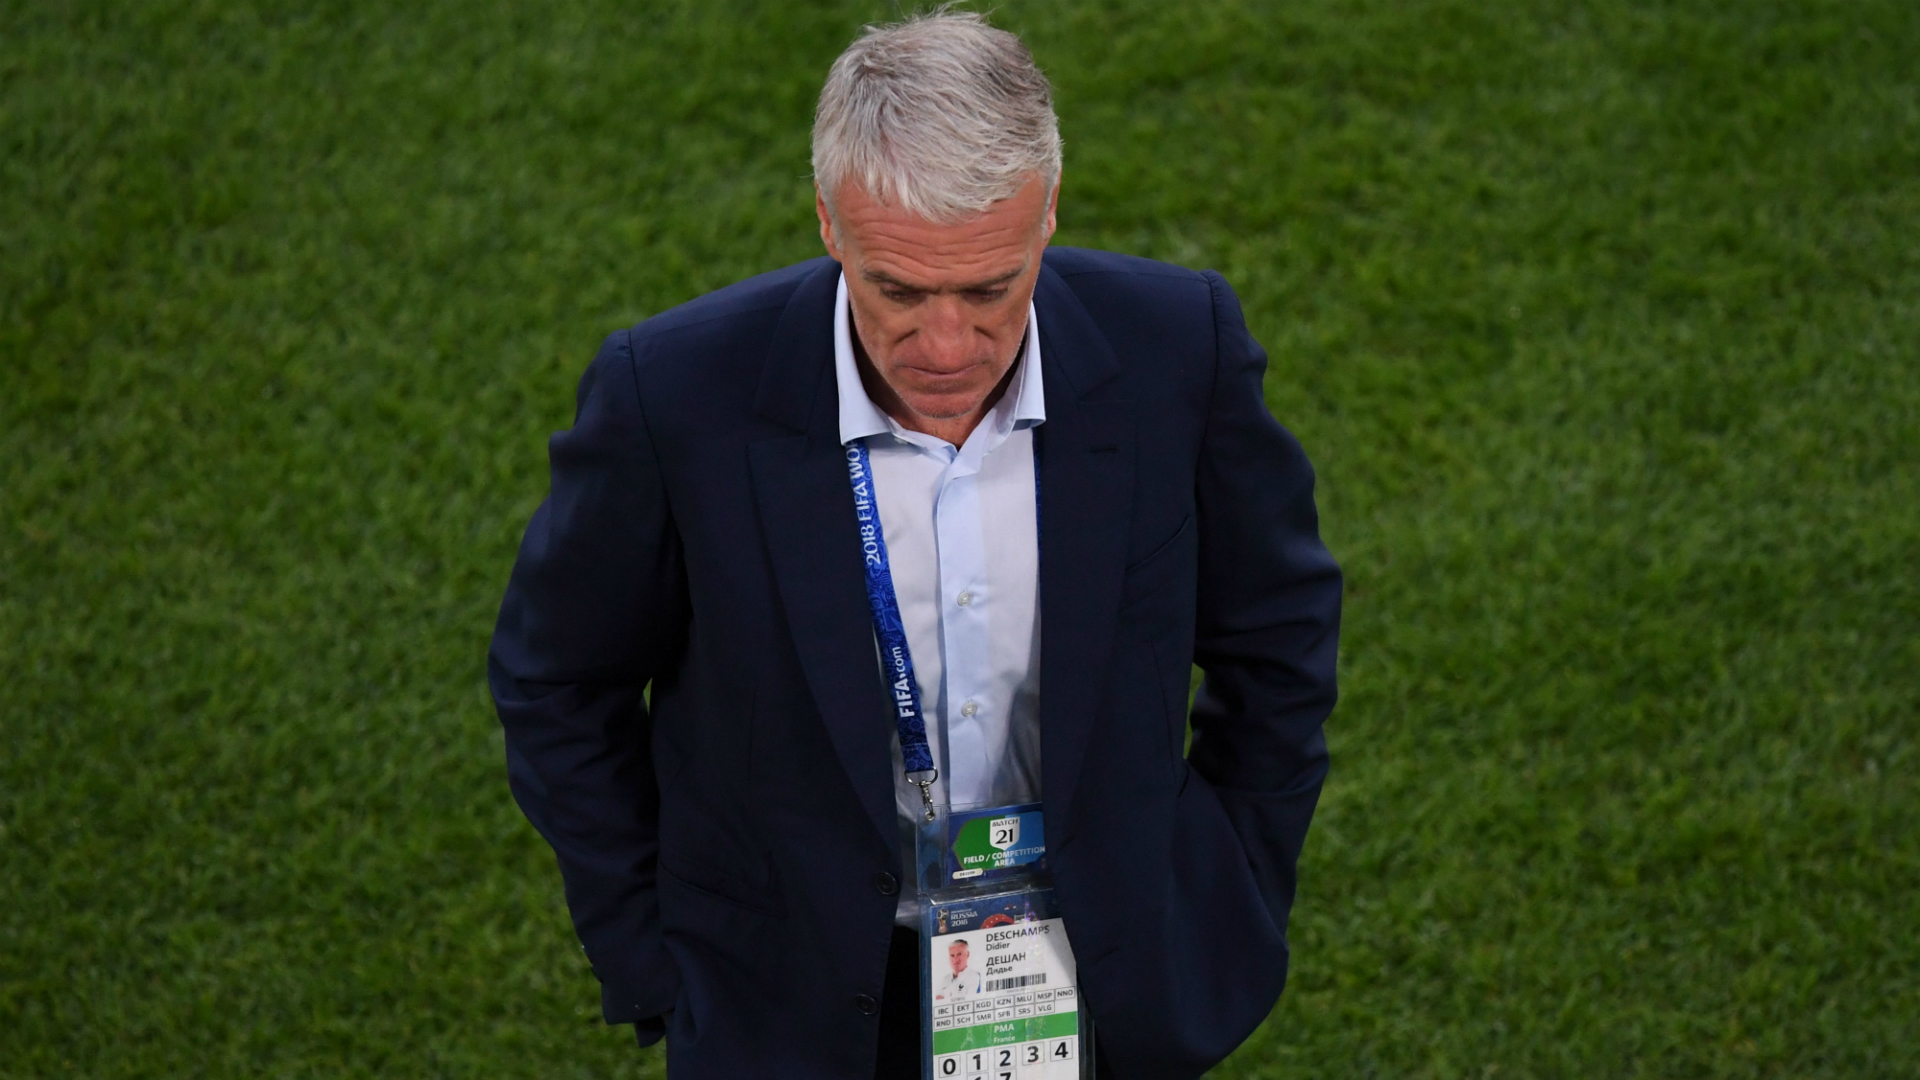 Didier Deschamps France Peru World Cup 2018 21062018.jpg